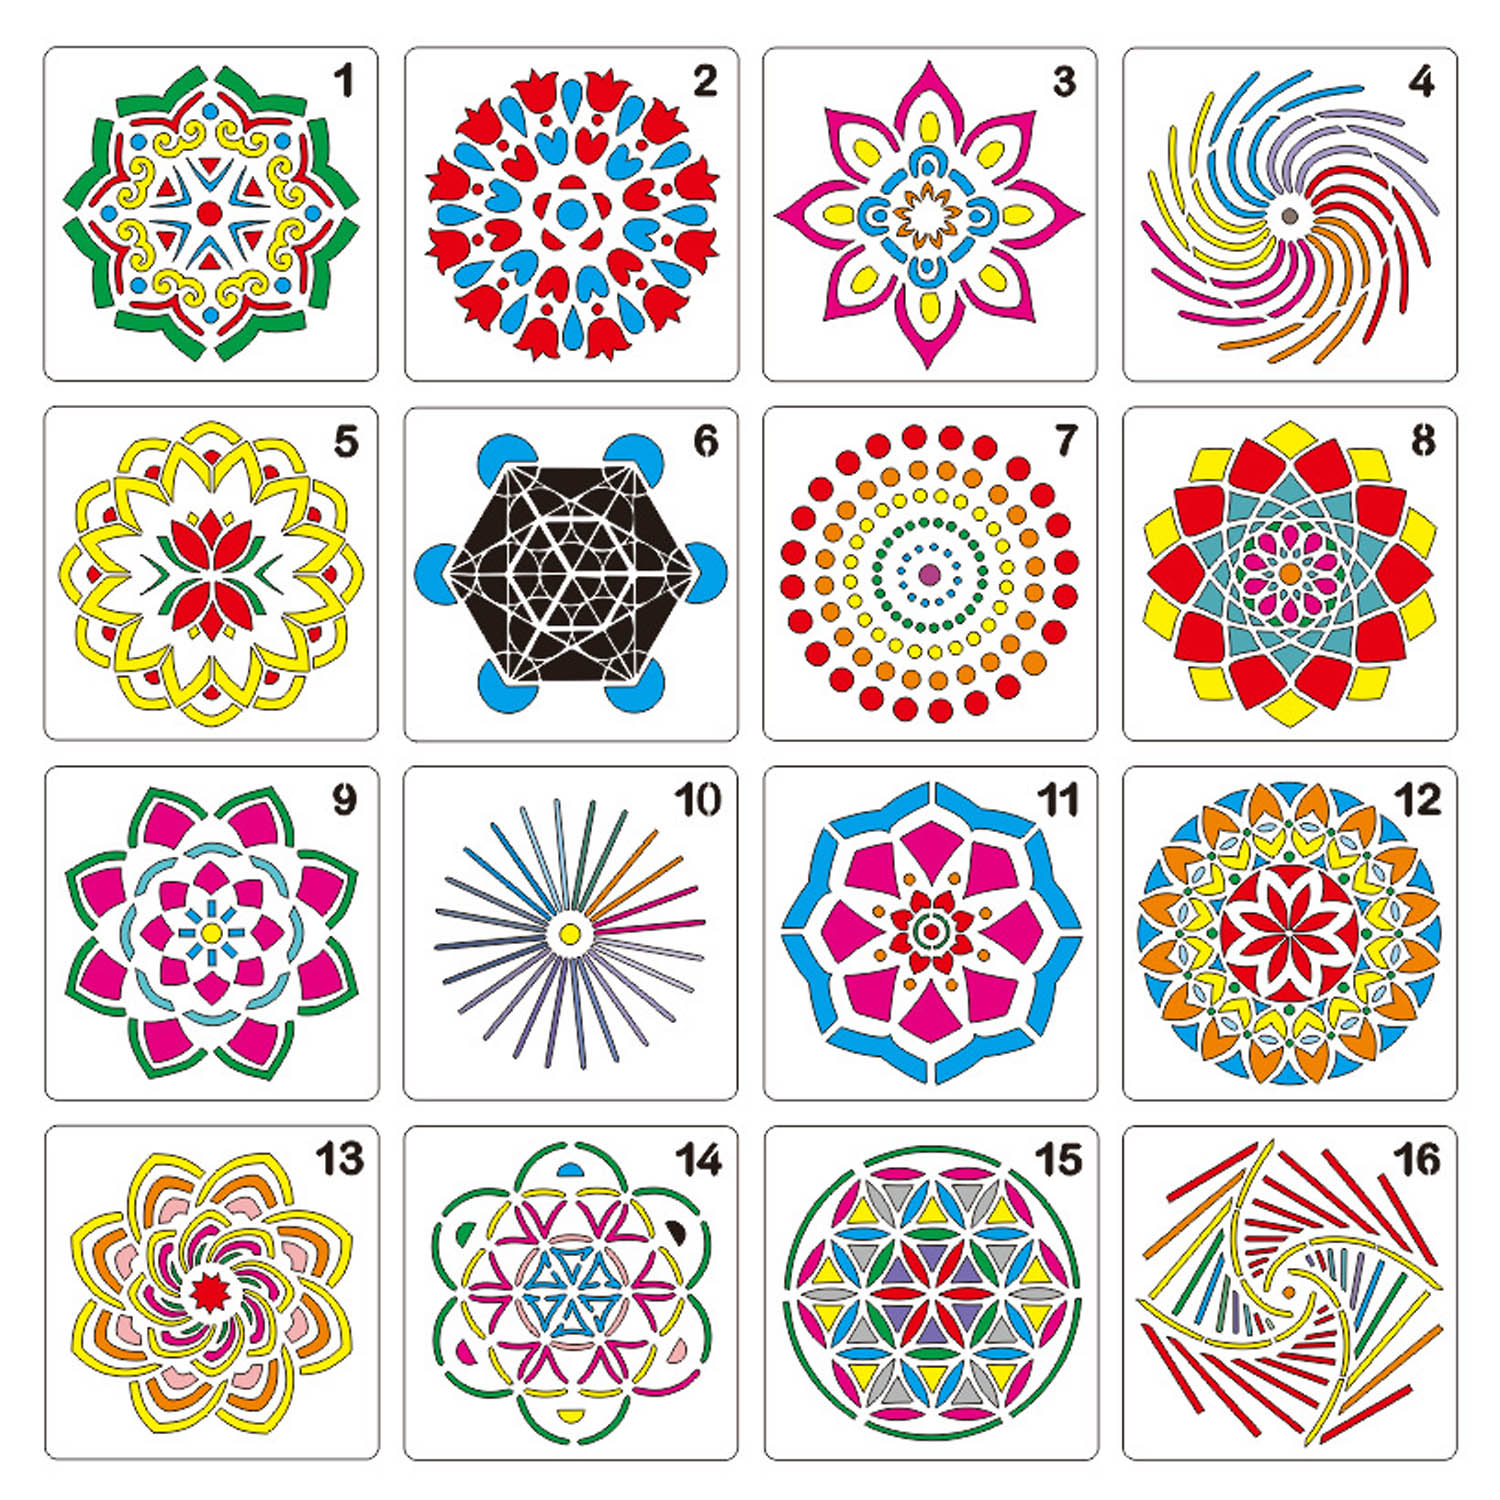 16pcs Mandala Dotting Tools Templates Stencil Set DIY Design For DIY Painting Drawing Drafting Art Craft Projects Accessories